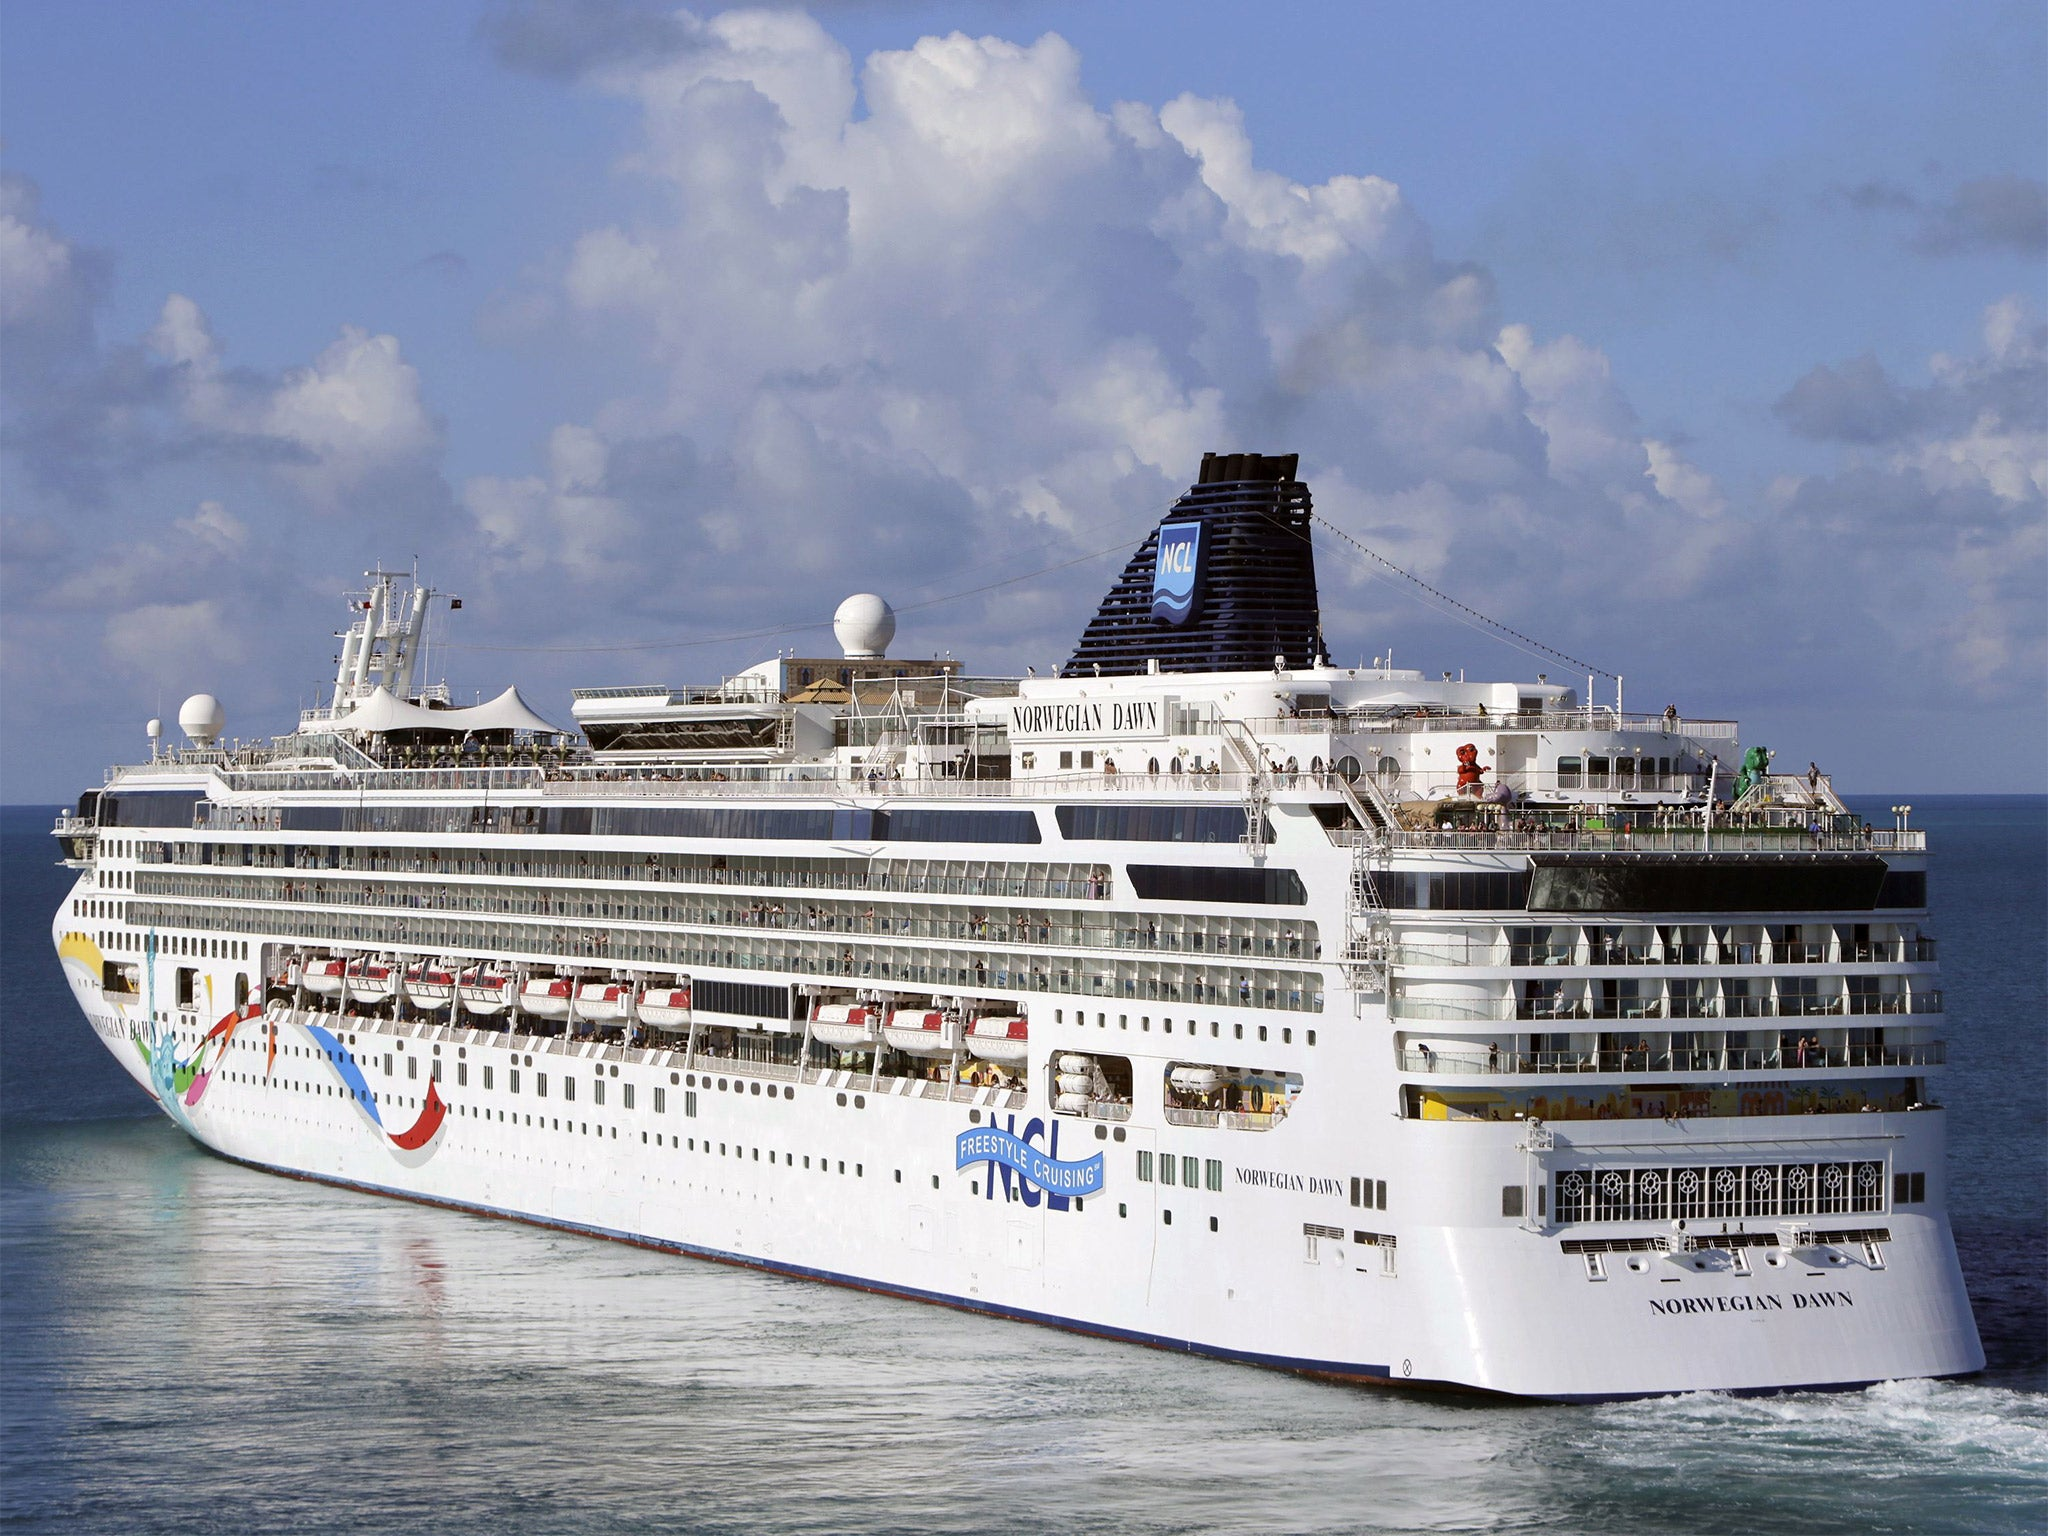 Norwegian Cruise Ship Freed After Running Aground In Bermuda The - Cruise ship dawn